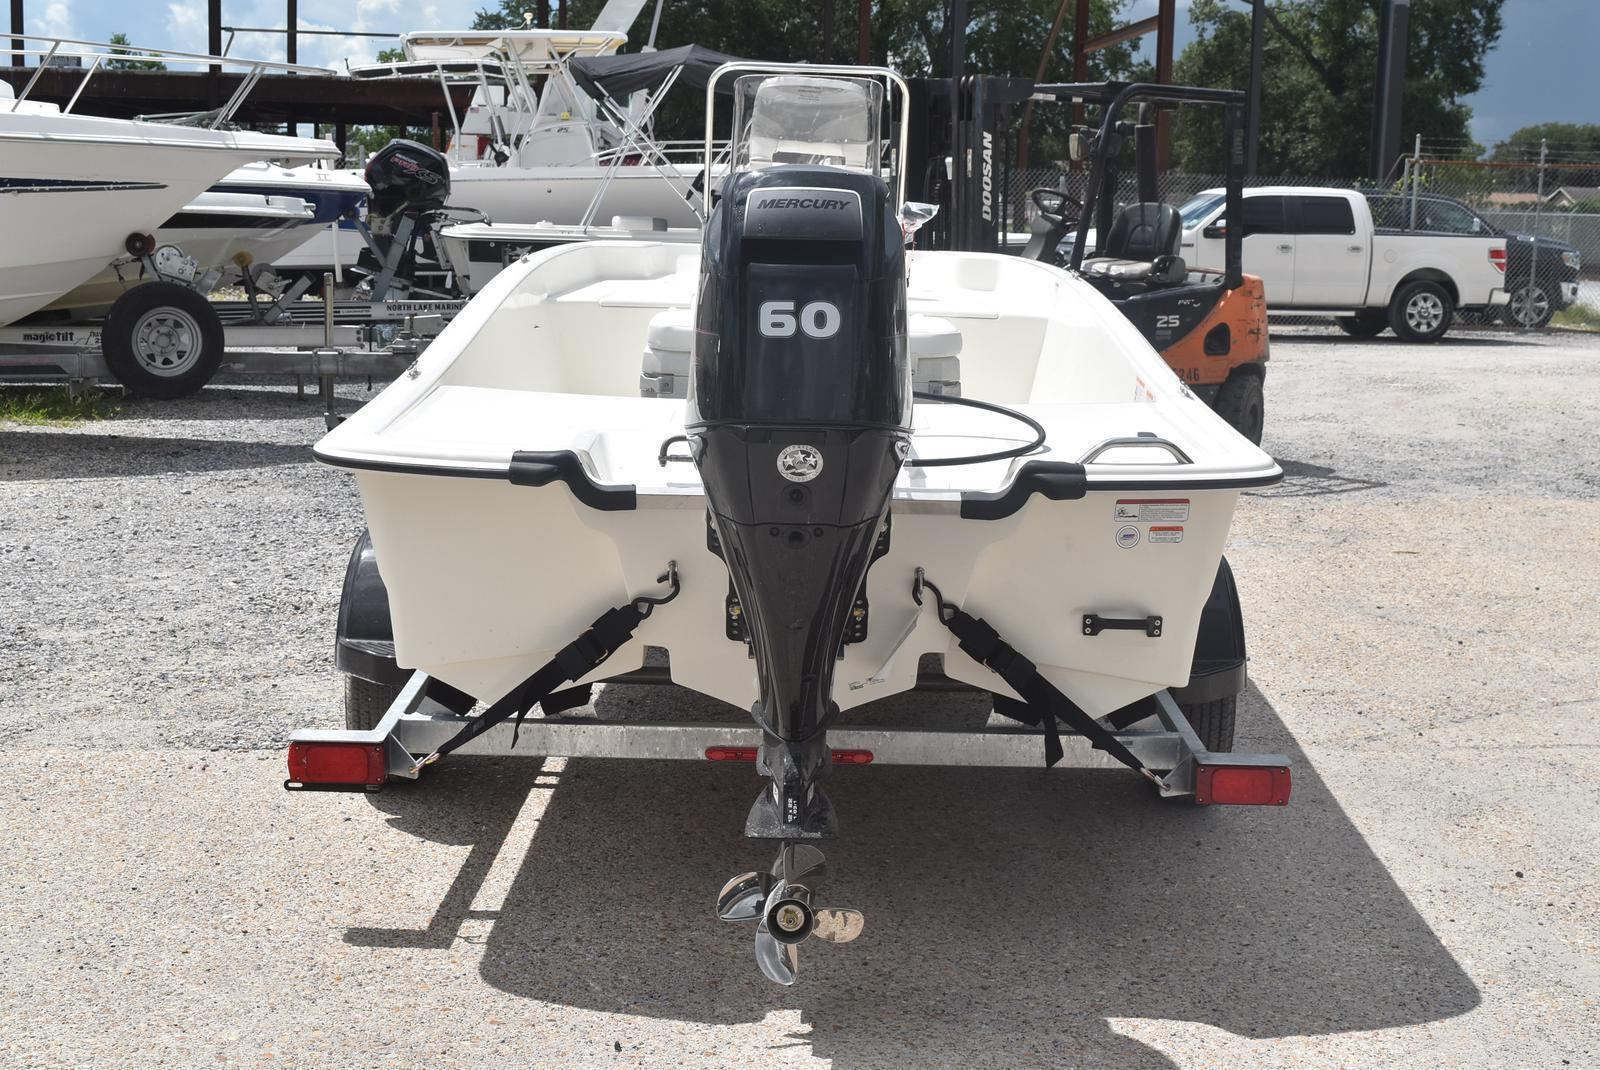 2020 Mako boat for sale, model of the boat is Pro Skiff 17, 75 ELPT & Image # 601 of 702